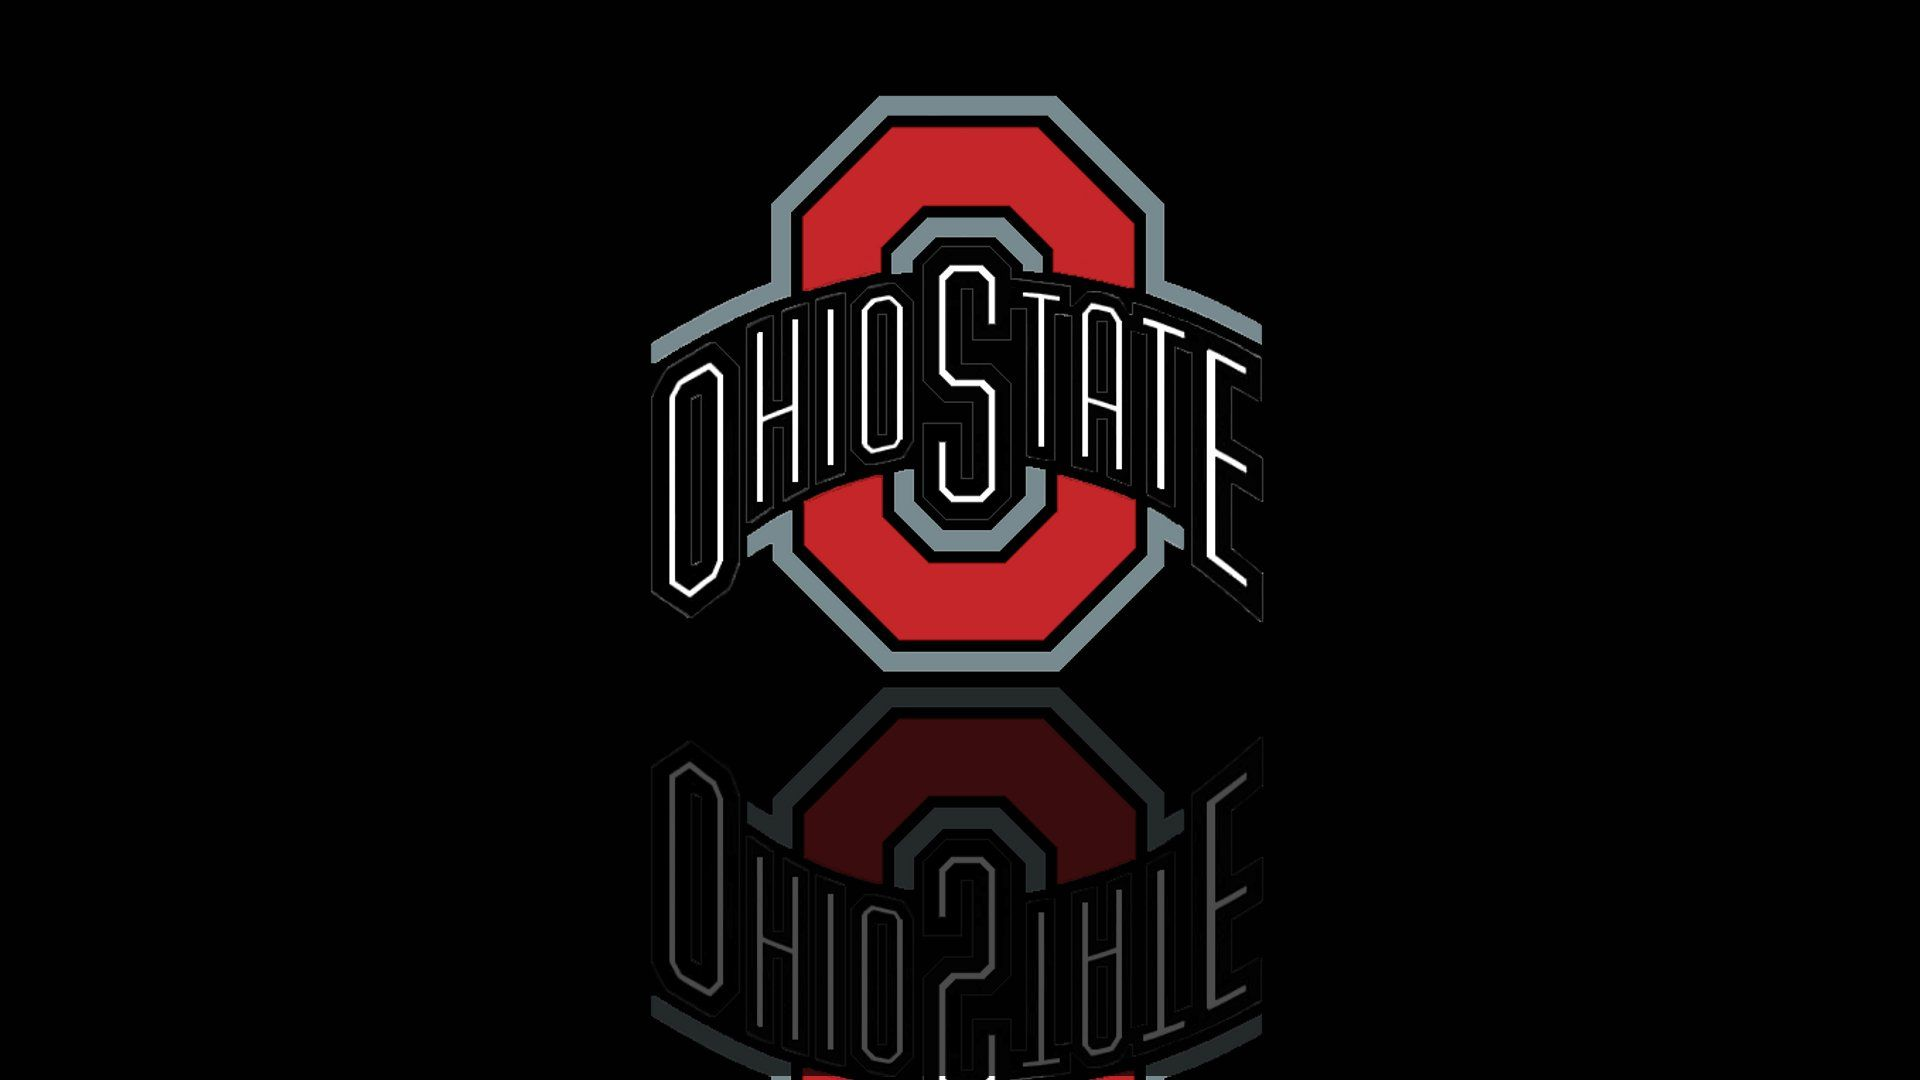 OSU Wallpaper 111 Ohio State Buckeyes Football